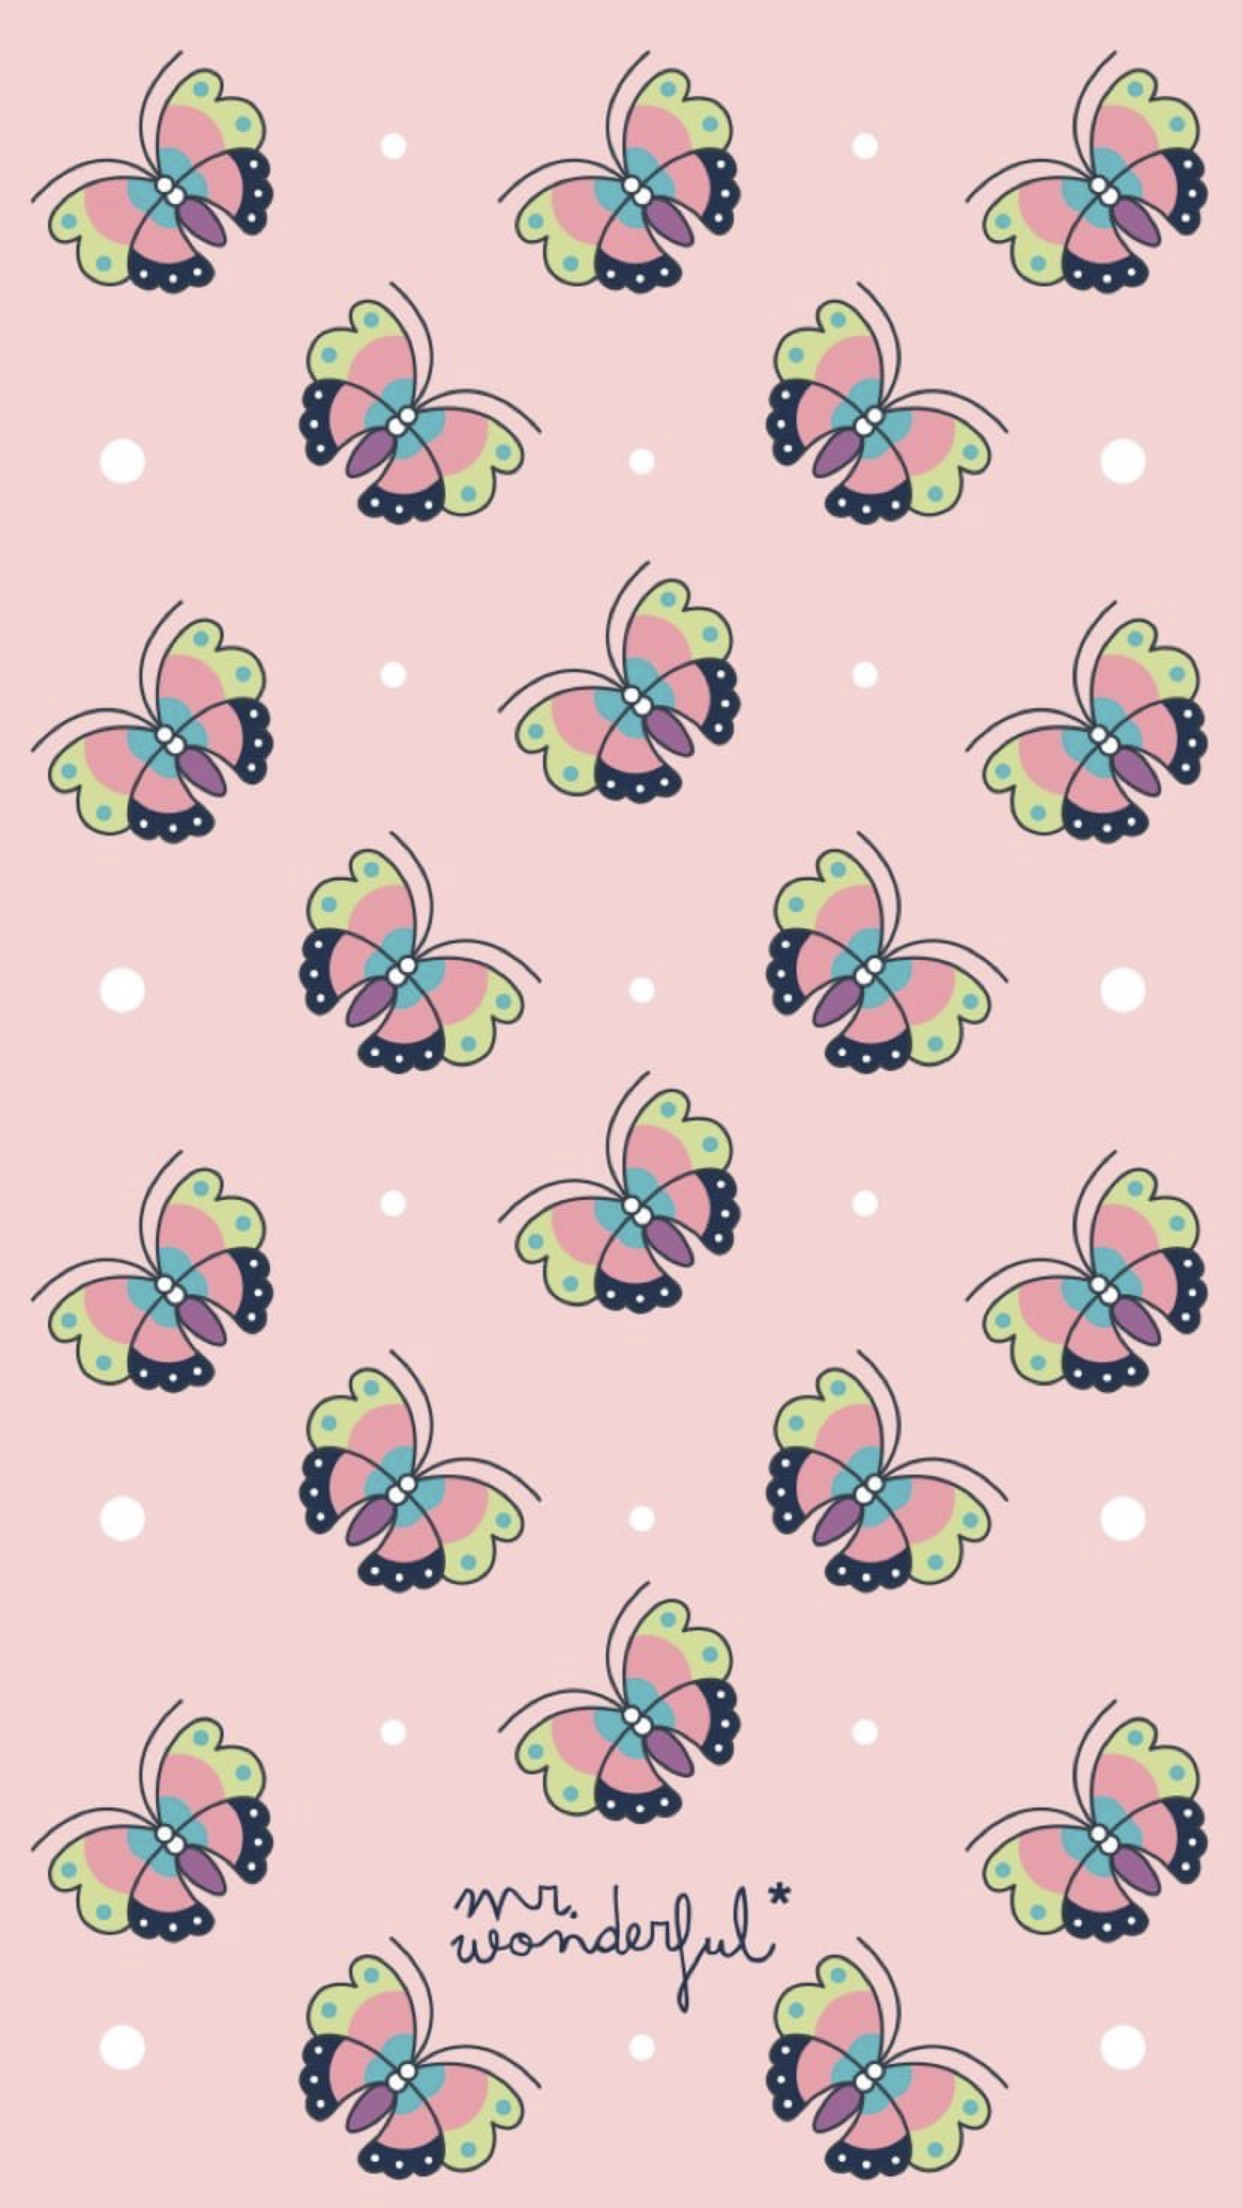 fondos de pantalla, fondo de pantalla, fondo de pantalla divertido, fondo de pantalla femenino, girly backgrounds, cool background, colorful backfround, fondo de pantalla patron, pattern, fondo de pantalla de mariposas, butterfly blackground.